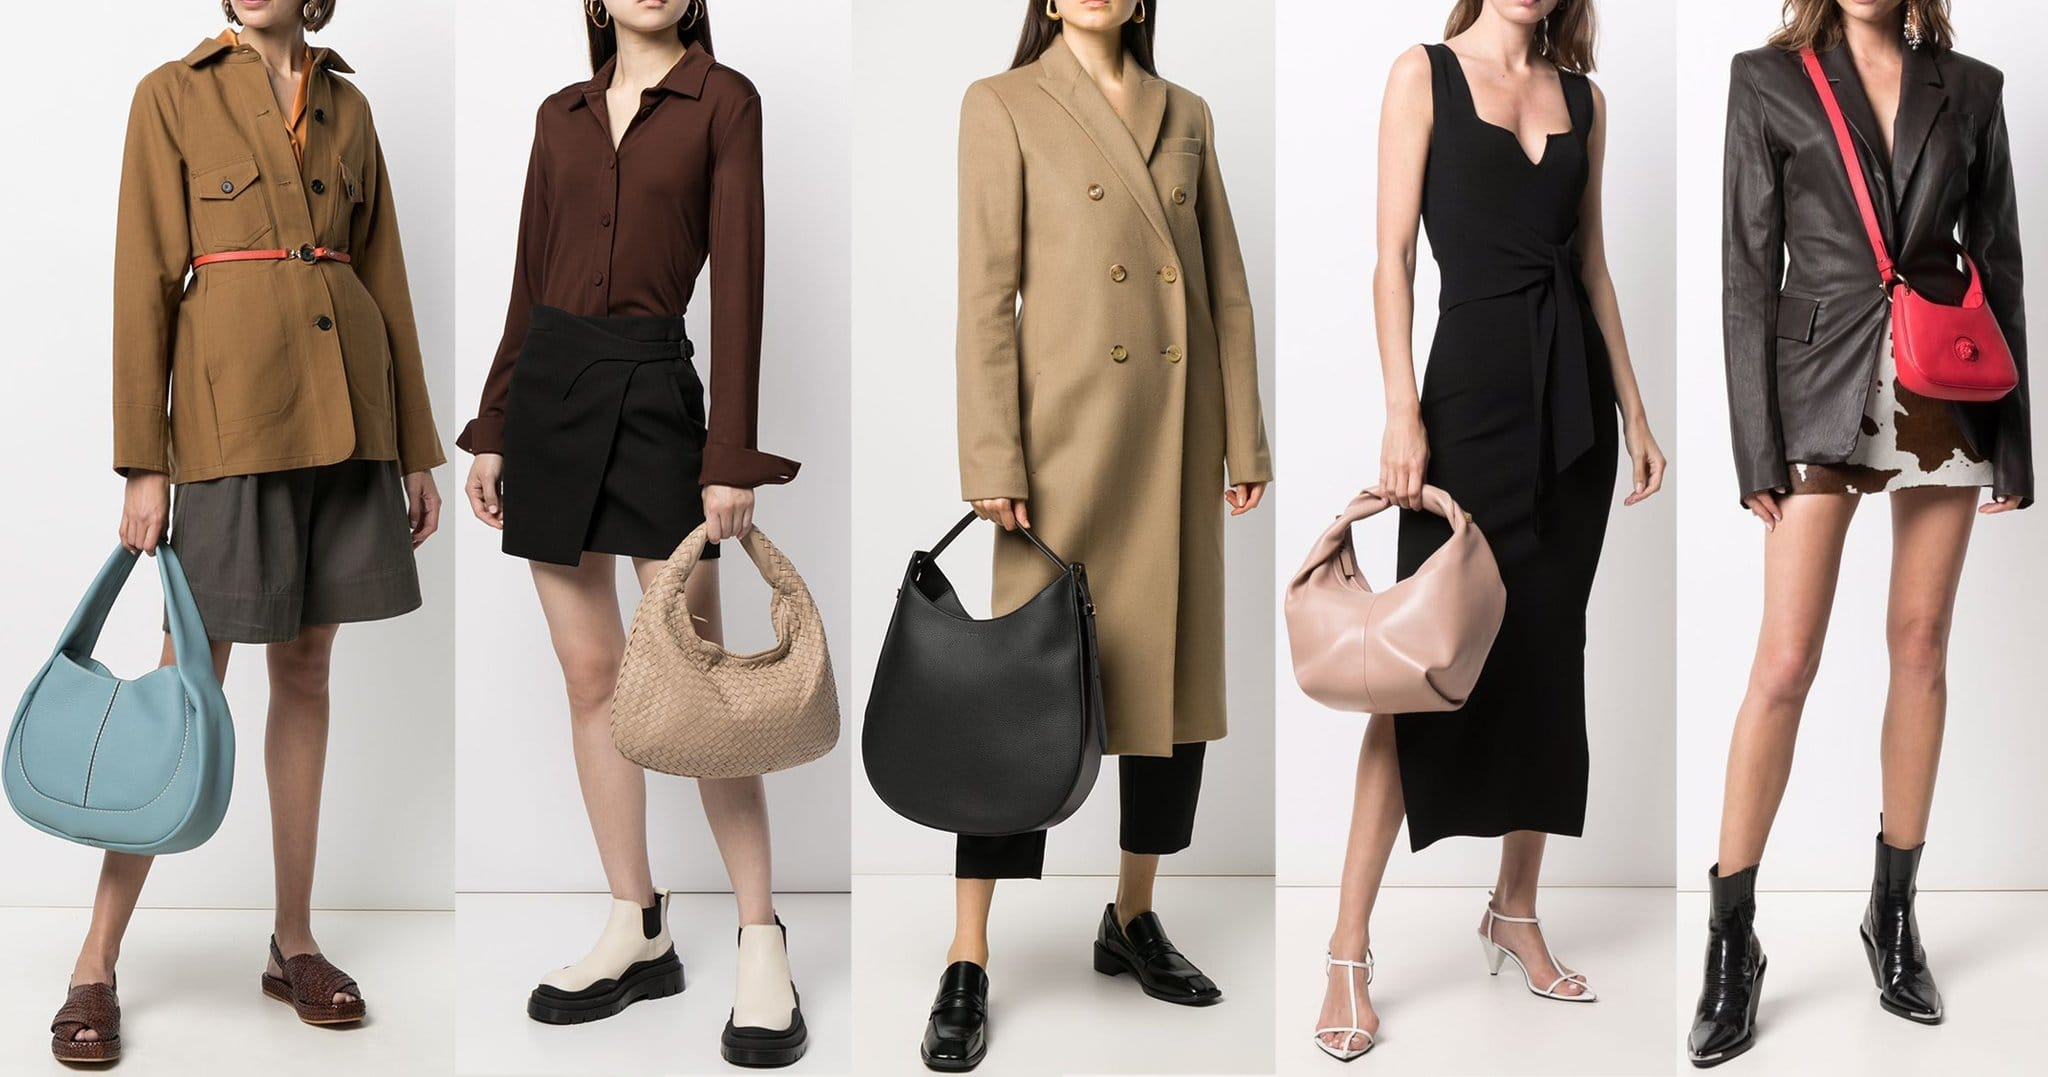 A hobo bag comes in different sizes but it is easily identified by its crescent silhouette and slouchy look